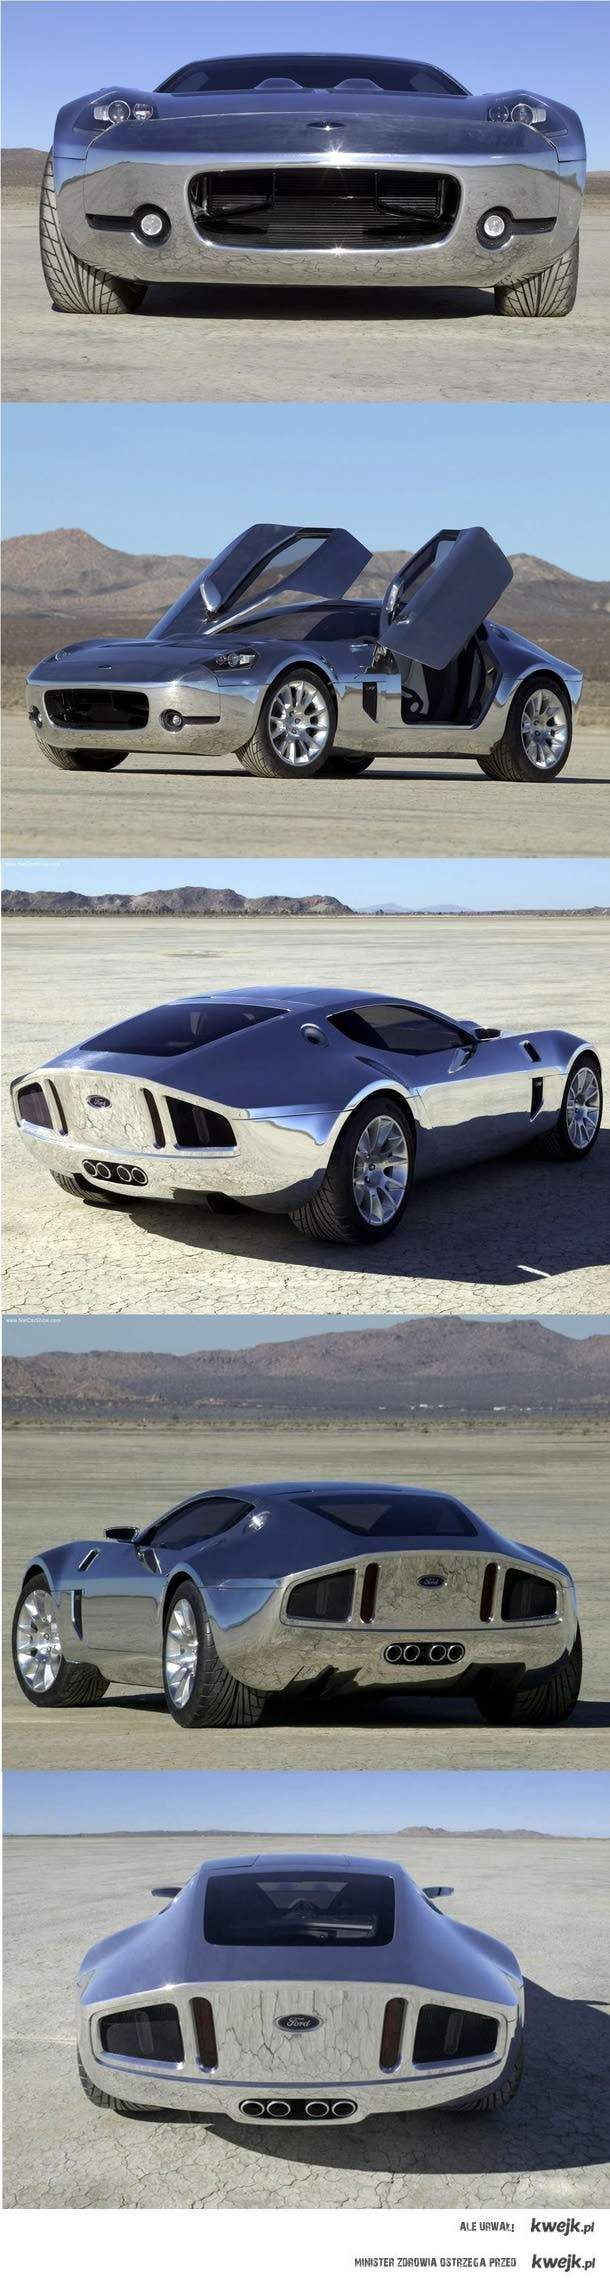 Ford Shelby GR-1 Concept #car Low Storage Rates and Great Move-In Specials! Look no further Everest Self Storage is the place when you're out of space! Call today or stop by for a tour of our facility! Indoor Parking Available! Ideal for Classic Cars, Motorcycles, ATV's & Jet Skies. Make your reservation today! 626-288-8182